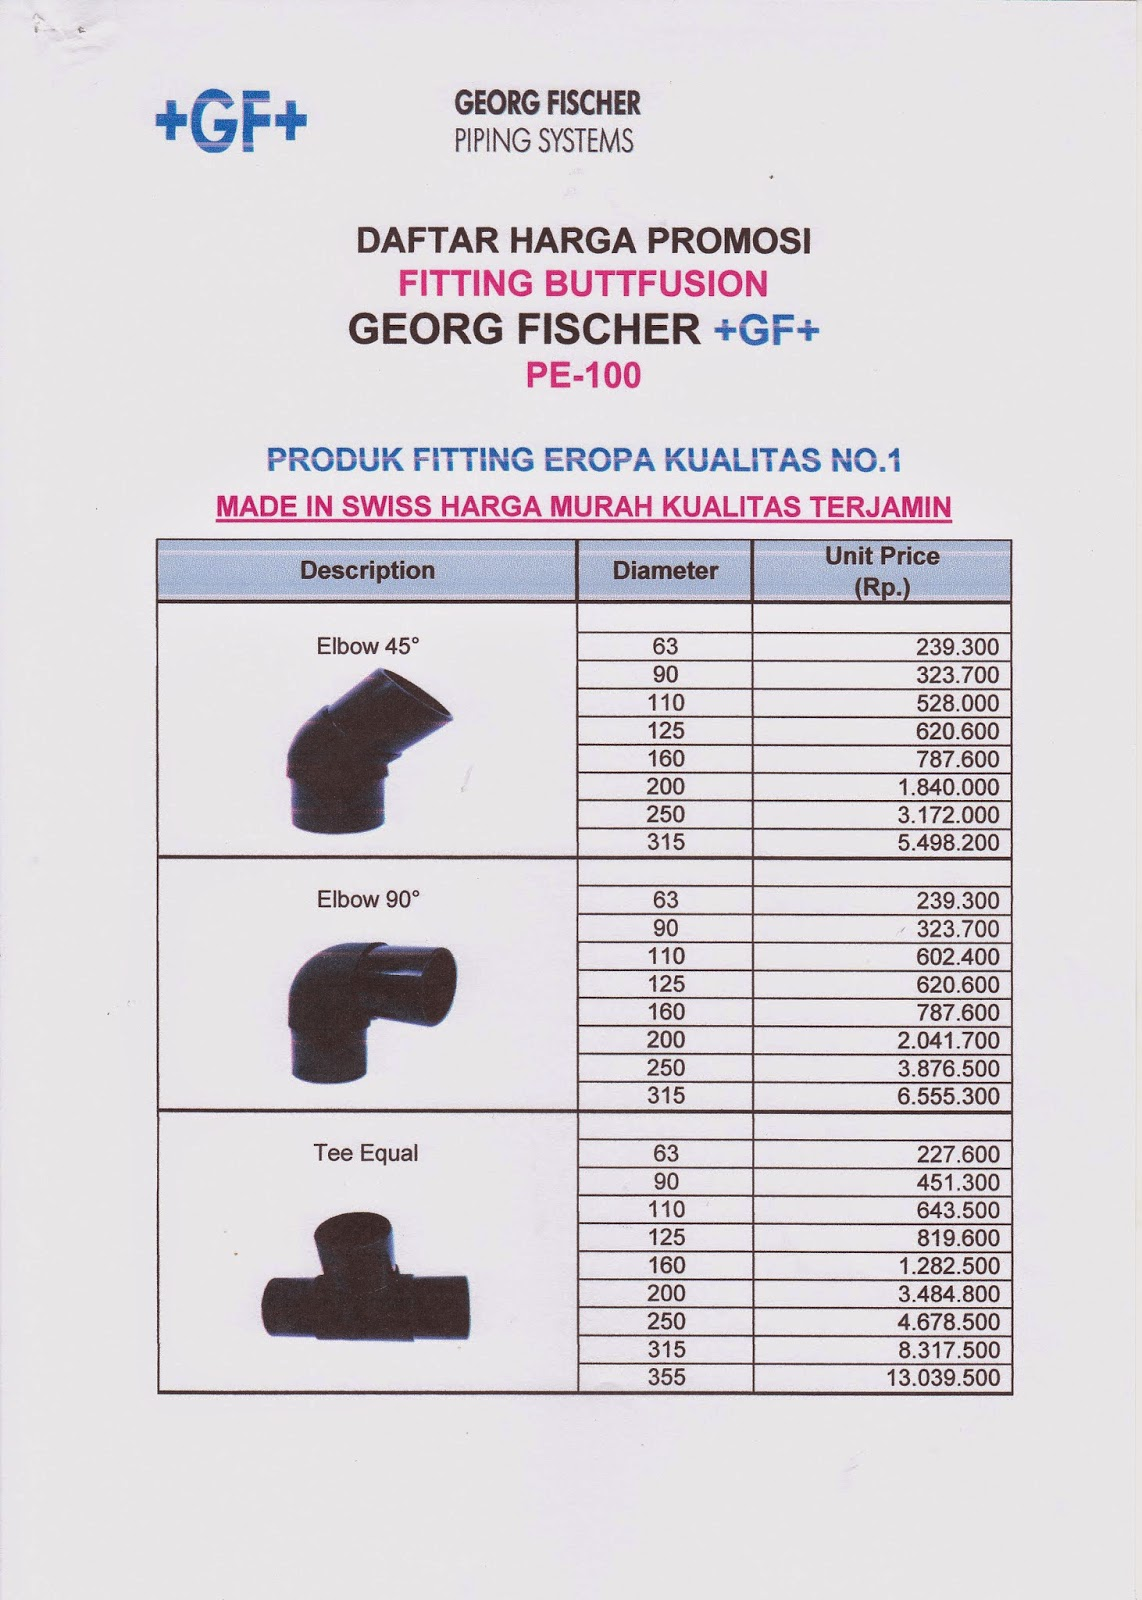 http://hdpepipa.blogspot.com/2015/04/harga-khusus-fitting-butt-fusion-georg.html